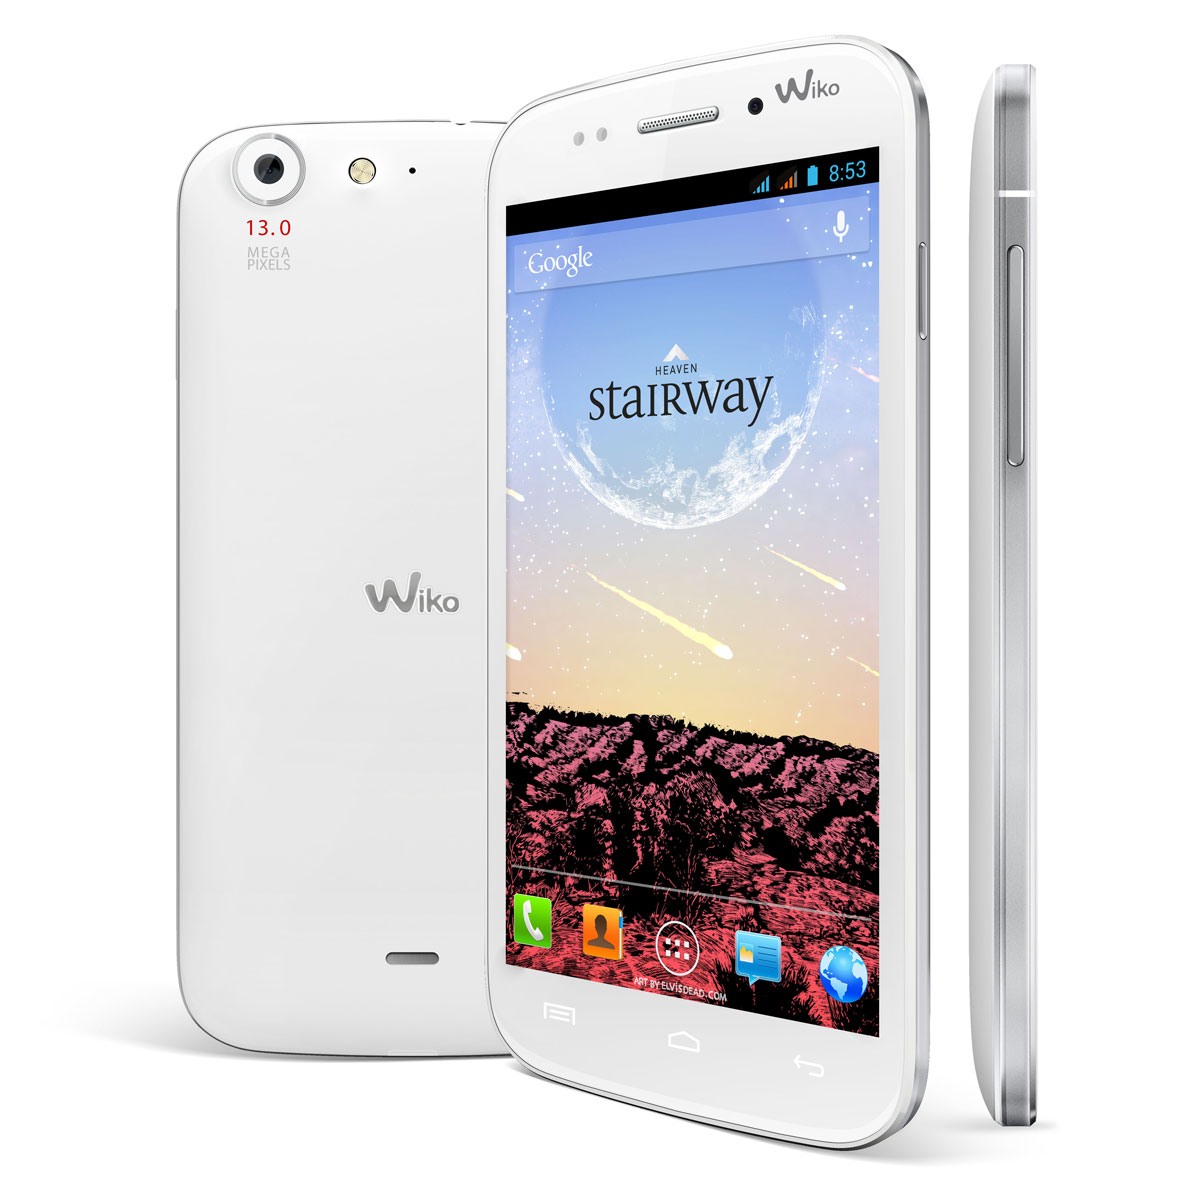 "Mobile & smartphone Wiko Stairway Blanc Smartphone 3G+ Dual Sim avec écran tactile HD 5.0"" sous Android 4.2"